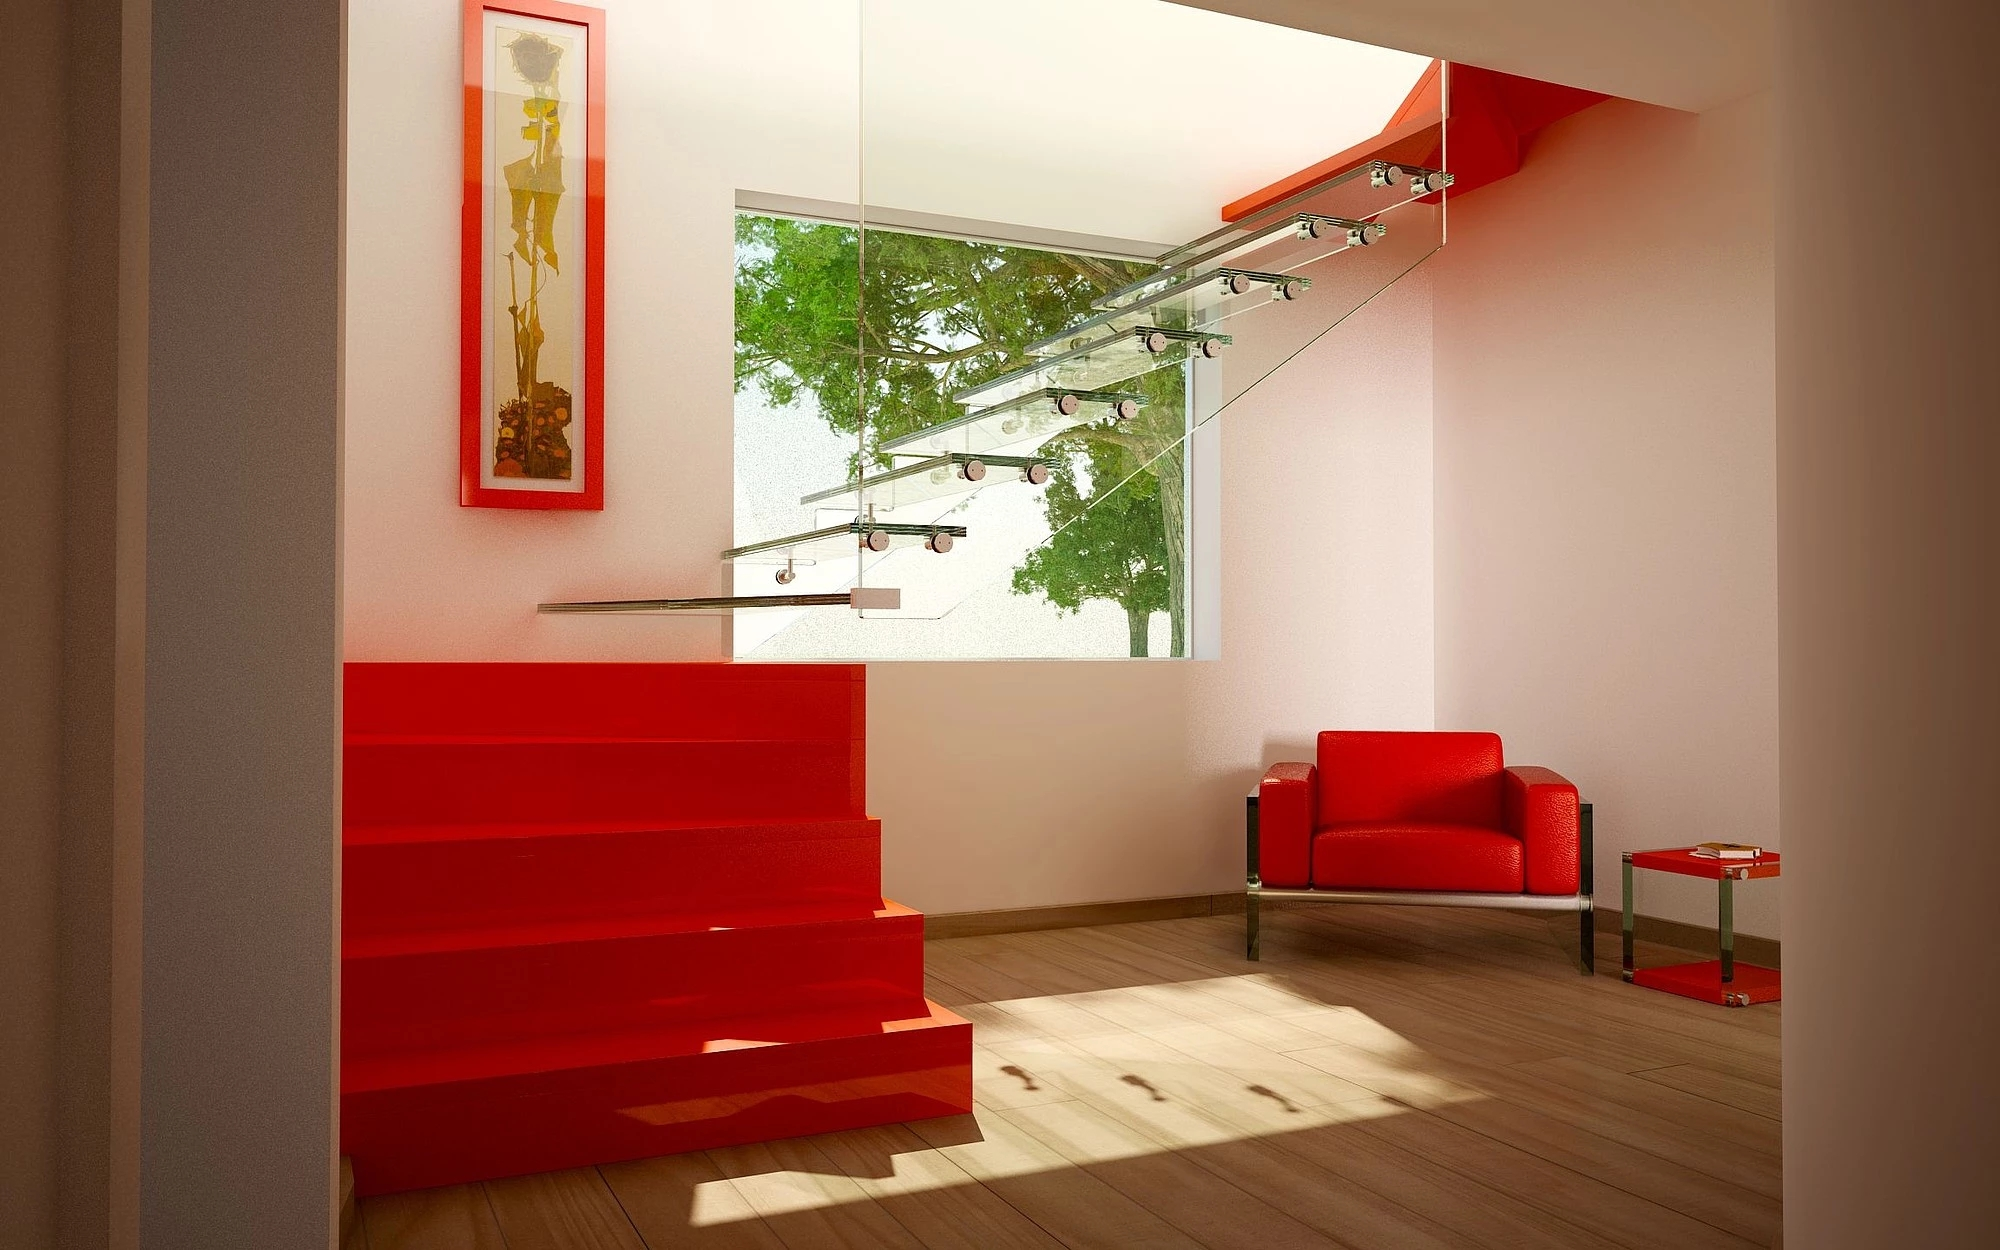 Pop Design Siller Stairs | Pop Design For Stairs Wall | Frame Up | Main Entrance | Wall Paper | Entry Wall | Luxury